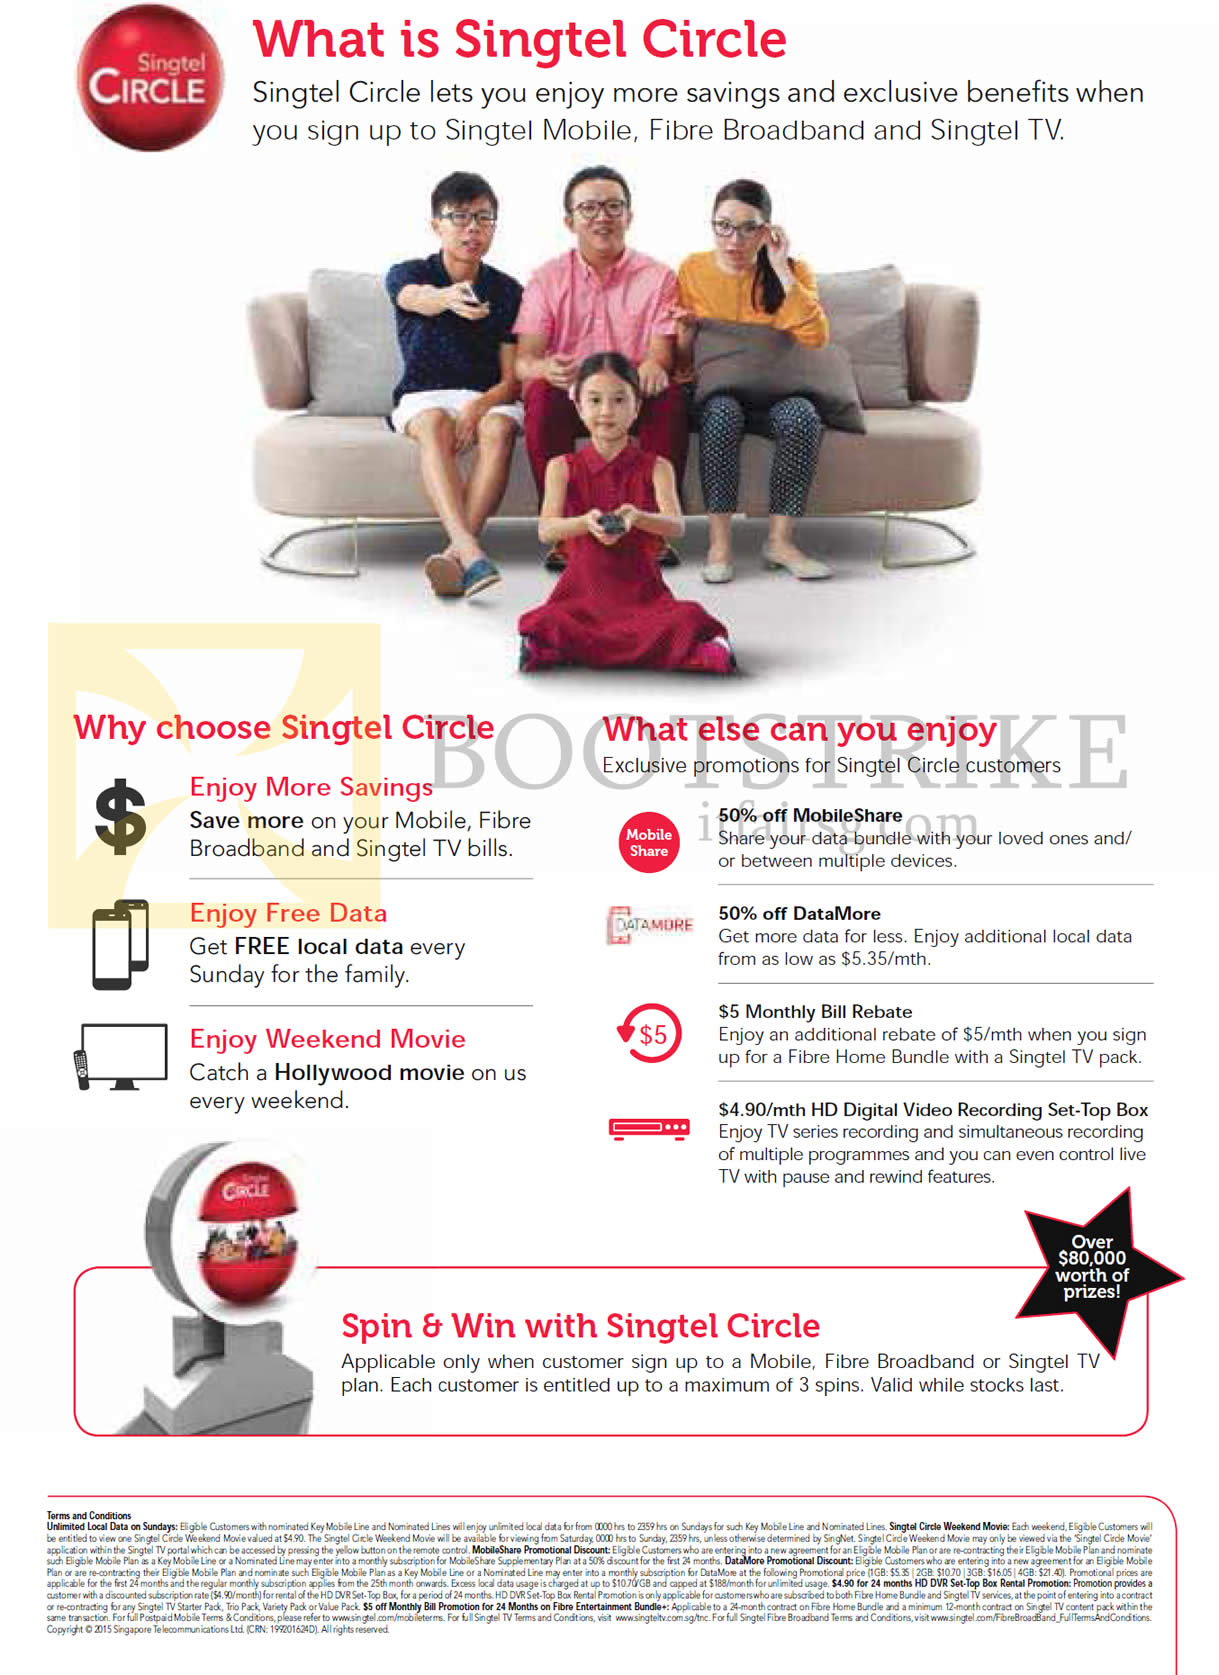 SITEX 2015 price list image brochure of Singtel Circle, Why Choose It, What Else To Enjoy